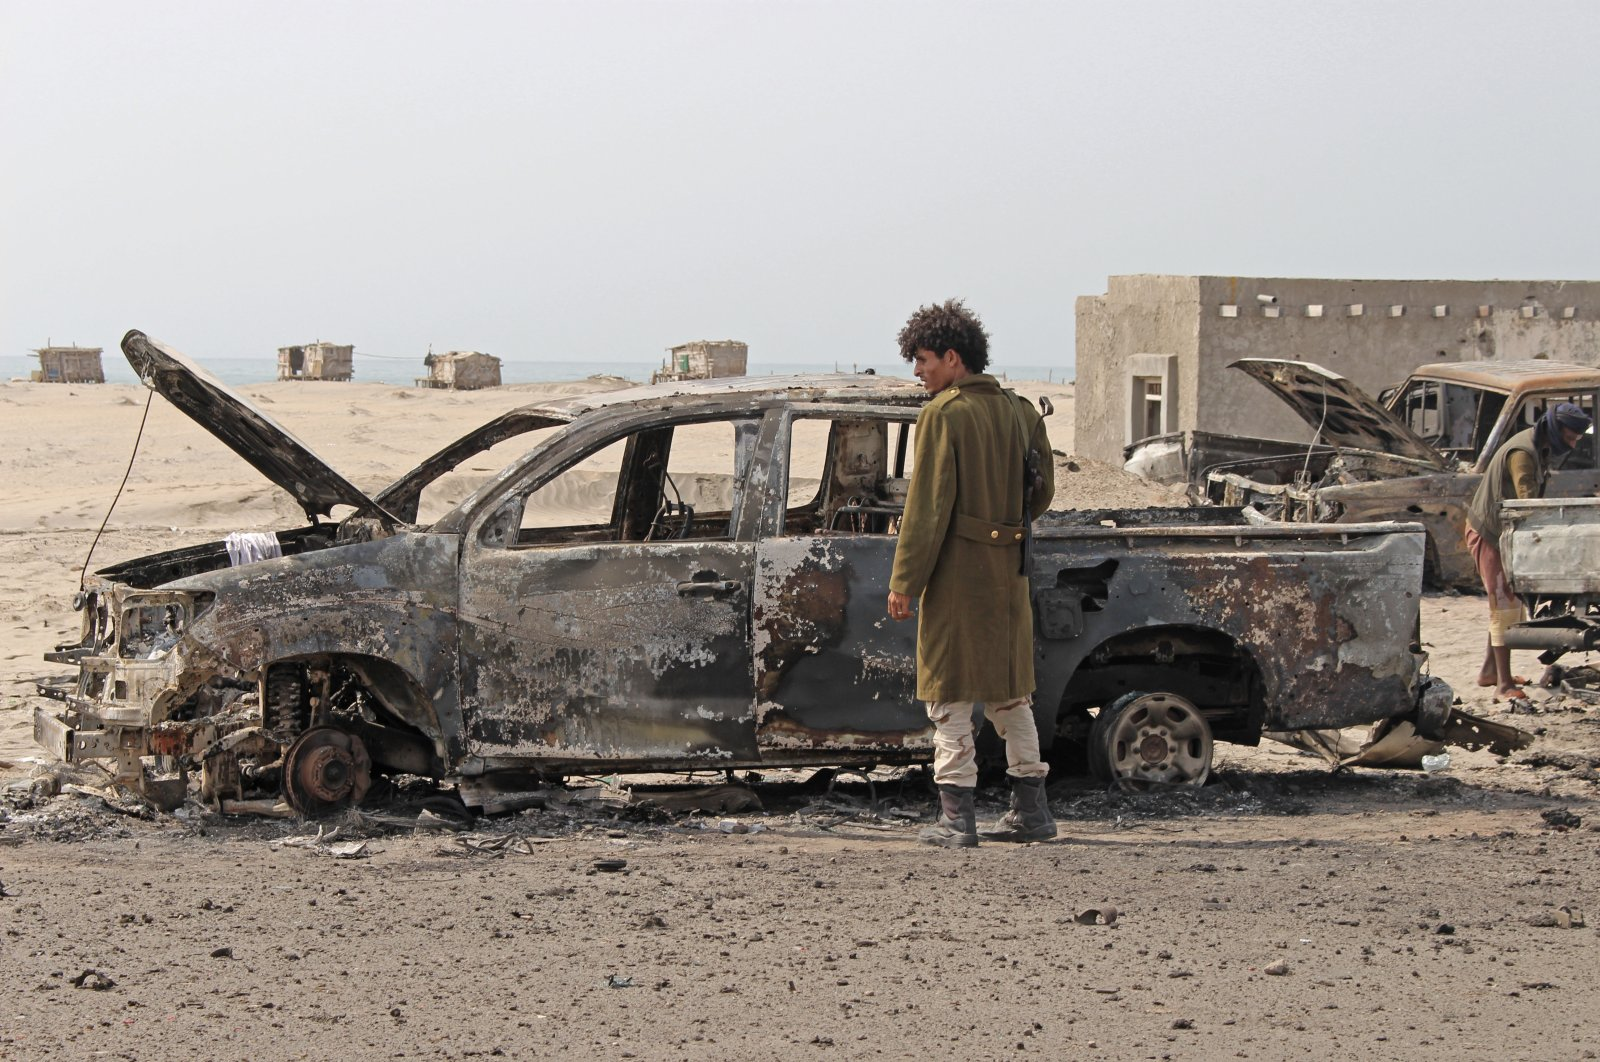 A Yemeni southern separatist fighter inspects the wreckage of government forces vehicles destroyed by UAE airstrikes, Aden, Aug. 30, 2019. (AP Photo)